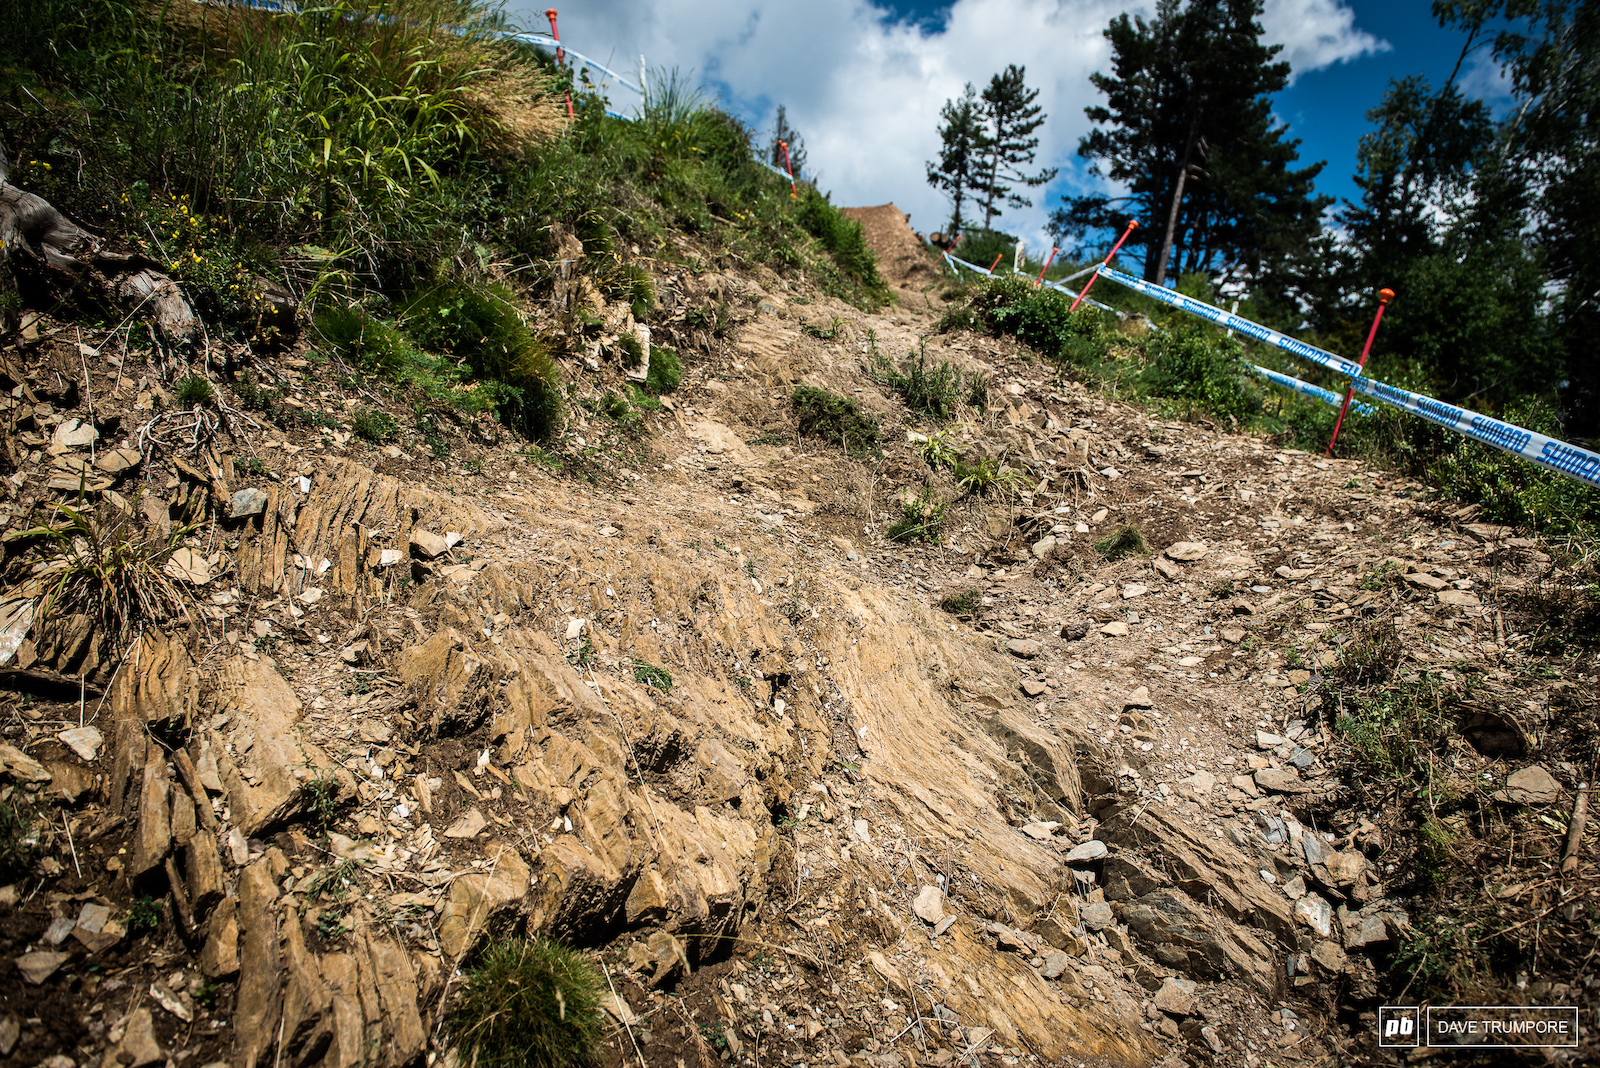 In between the berms and jumps are plenty of sharp rocks as the track has now aged to the point that there is little dirt left in some sections and only the bedrock.